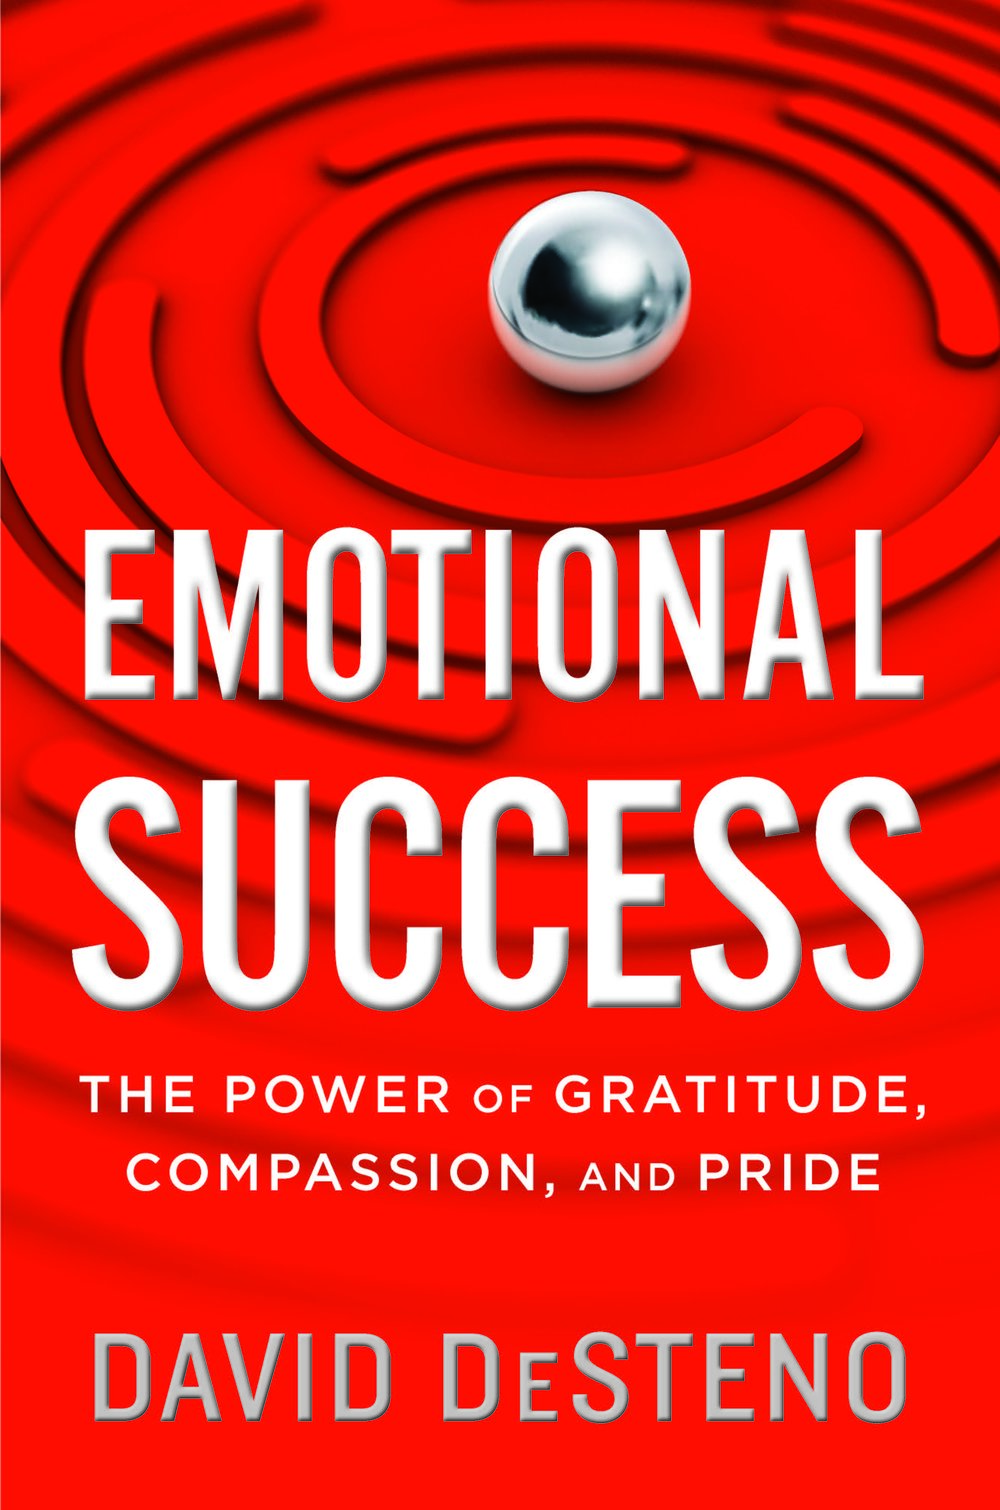 emotional success book cover